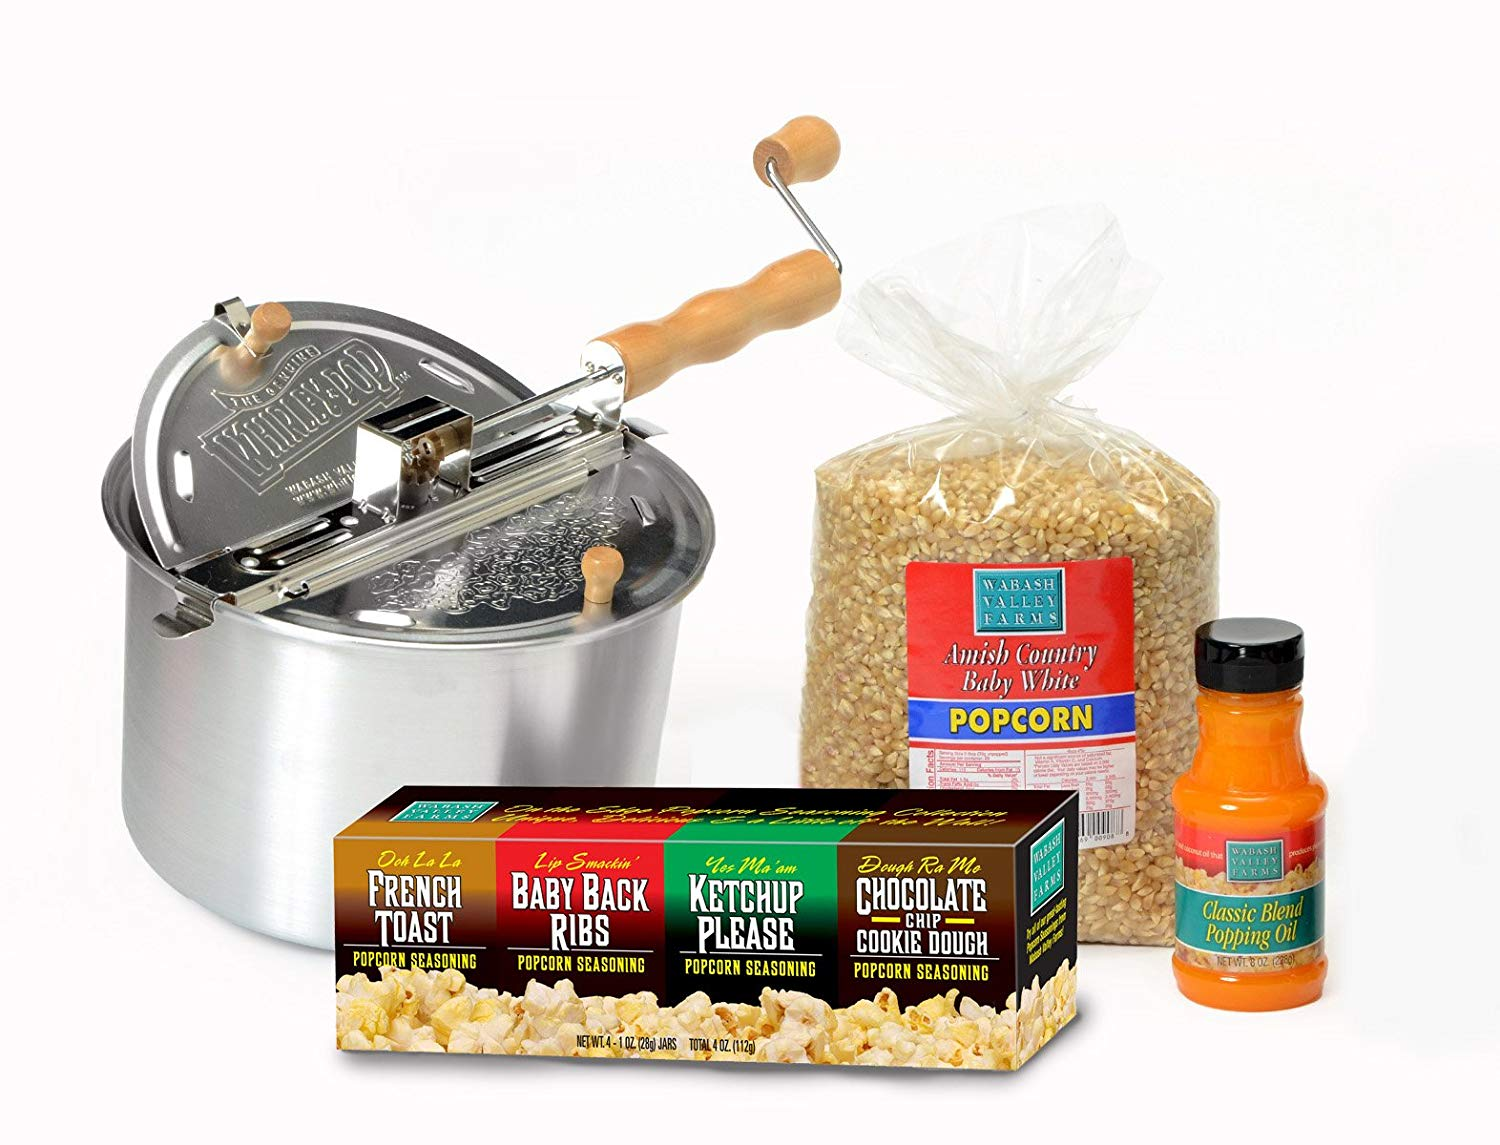 Original Whirley Pop Gift Set – Popcorn Gift Set with Stovetop Popcorn Popper, Great Gift for Movie and Snack Lovers, Perfect Popcorn in 3 Minutes, 6-Quart Capacity